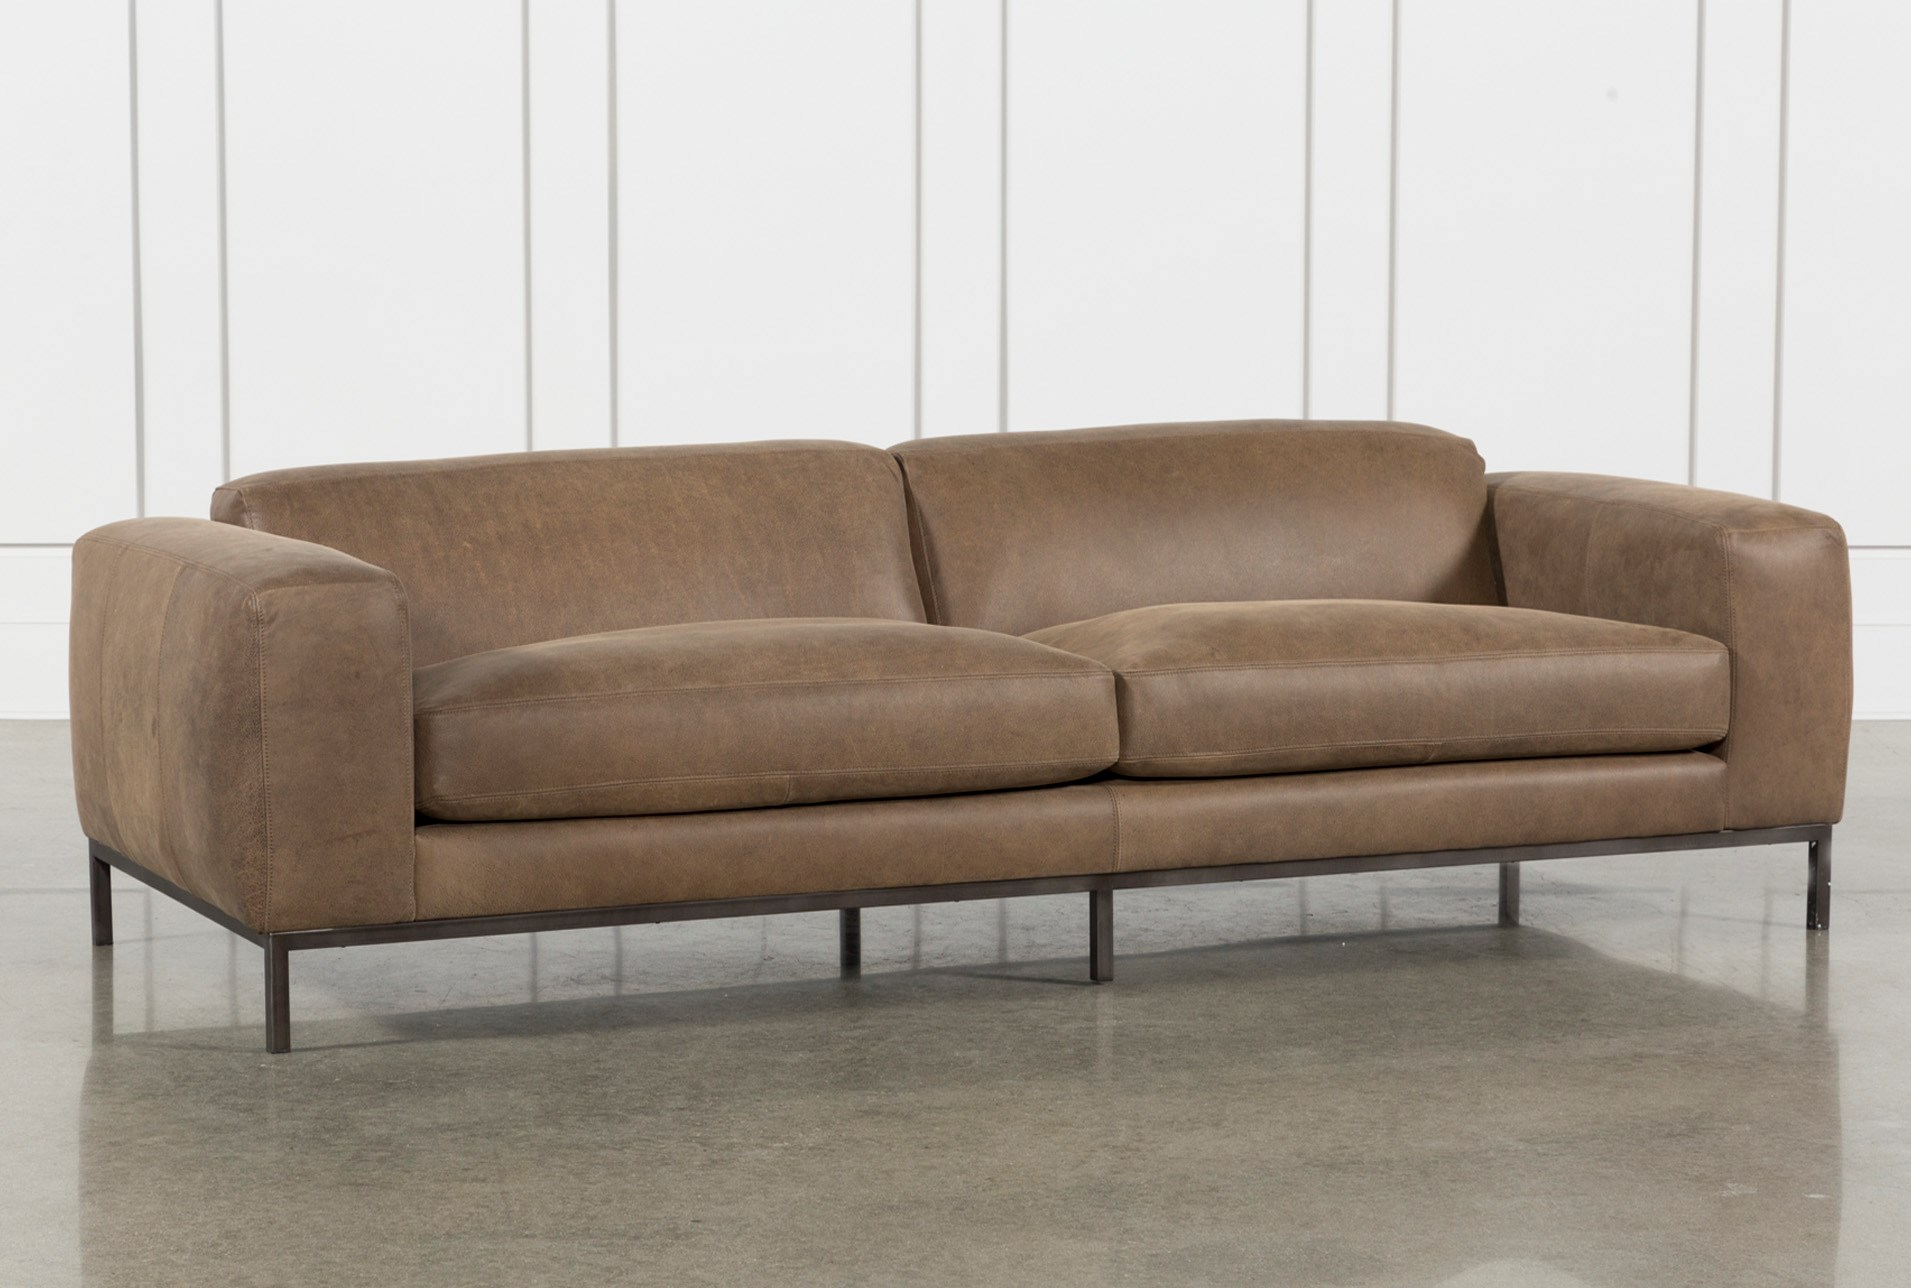 Top Grain Or Full Leather Sofa Best Accessories Home 2017